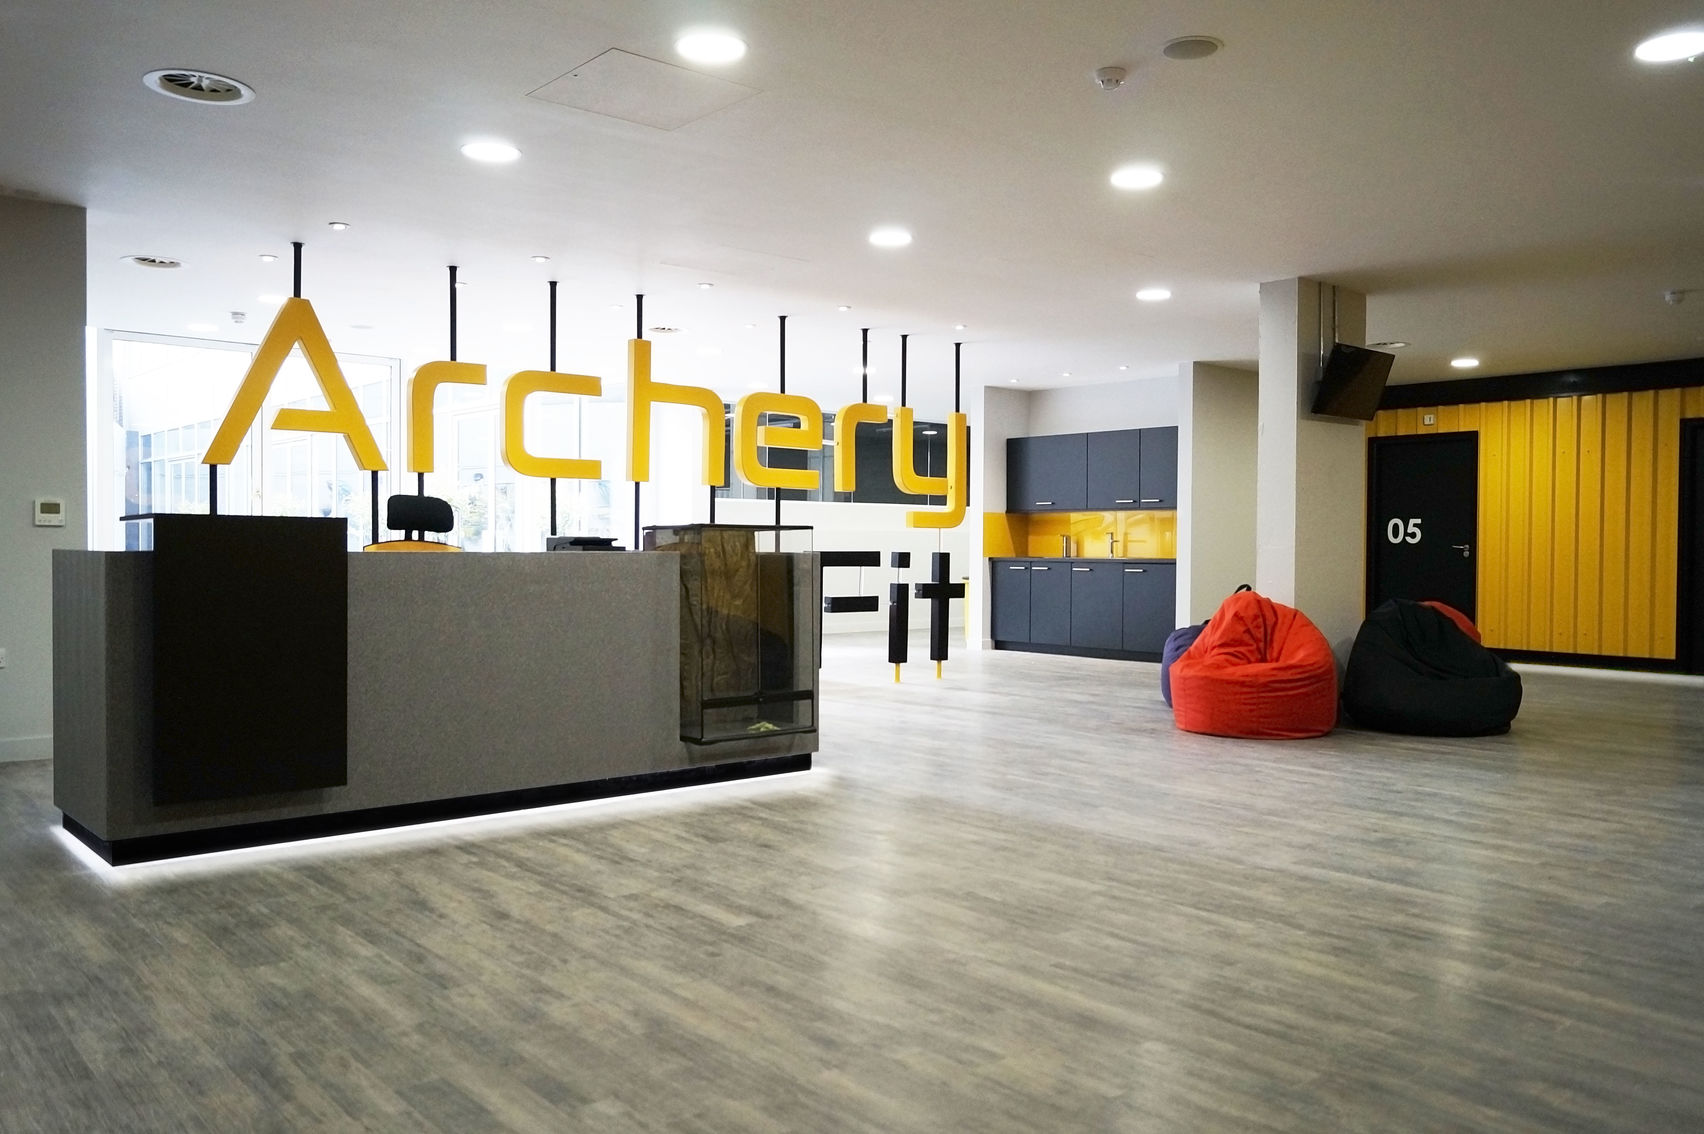 Archery Fit is a great corporate away days venue. The space is a large reception area which has a large archery sign in yellow above the desk. On the right hand side there are several bean bags on the floor then behind that a small kitchen area.